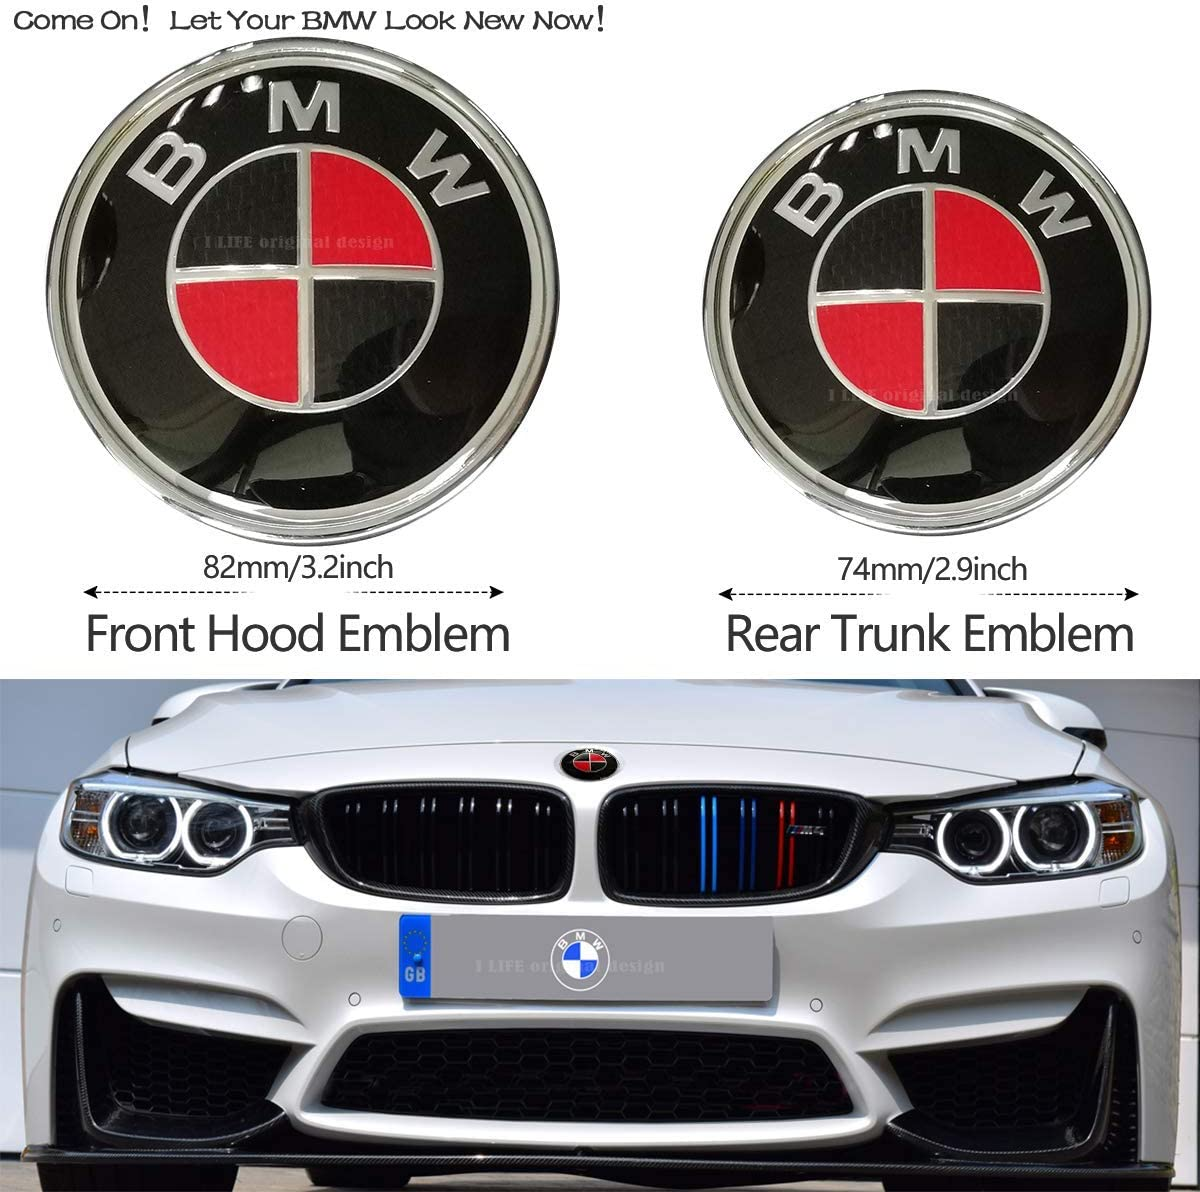 82mm 74mm Black BMW Logo Replacement for ALL Models BMW E46 E30 E36 E34 E38 E39 E60 E65 E90 325i 328i X3 X5 X6 1 3 5 6 7 BMW Emblems Hood and Trunk